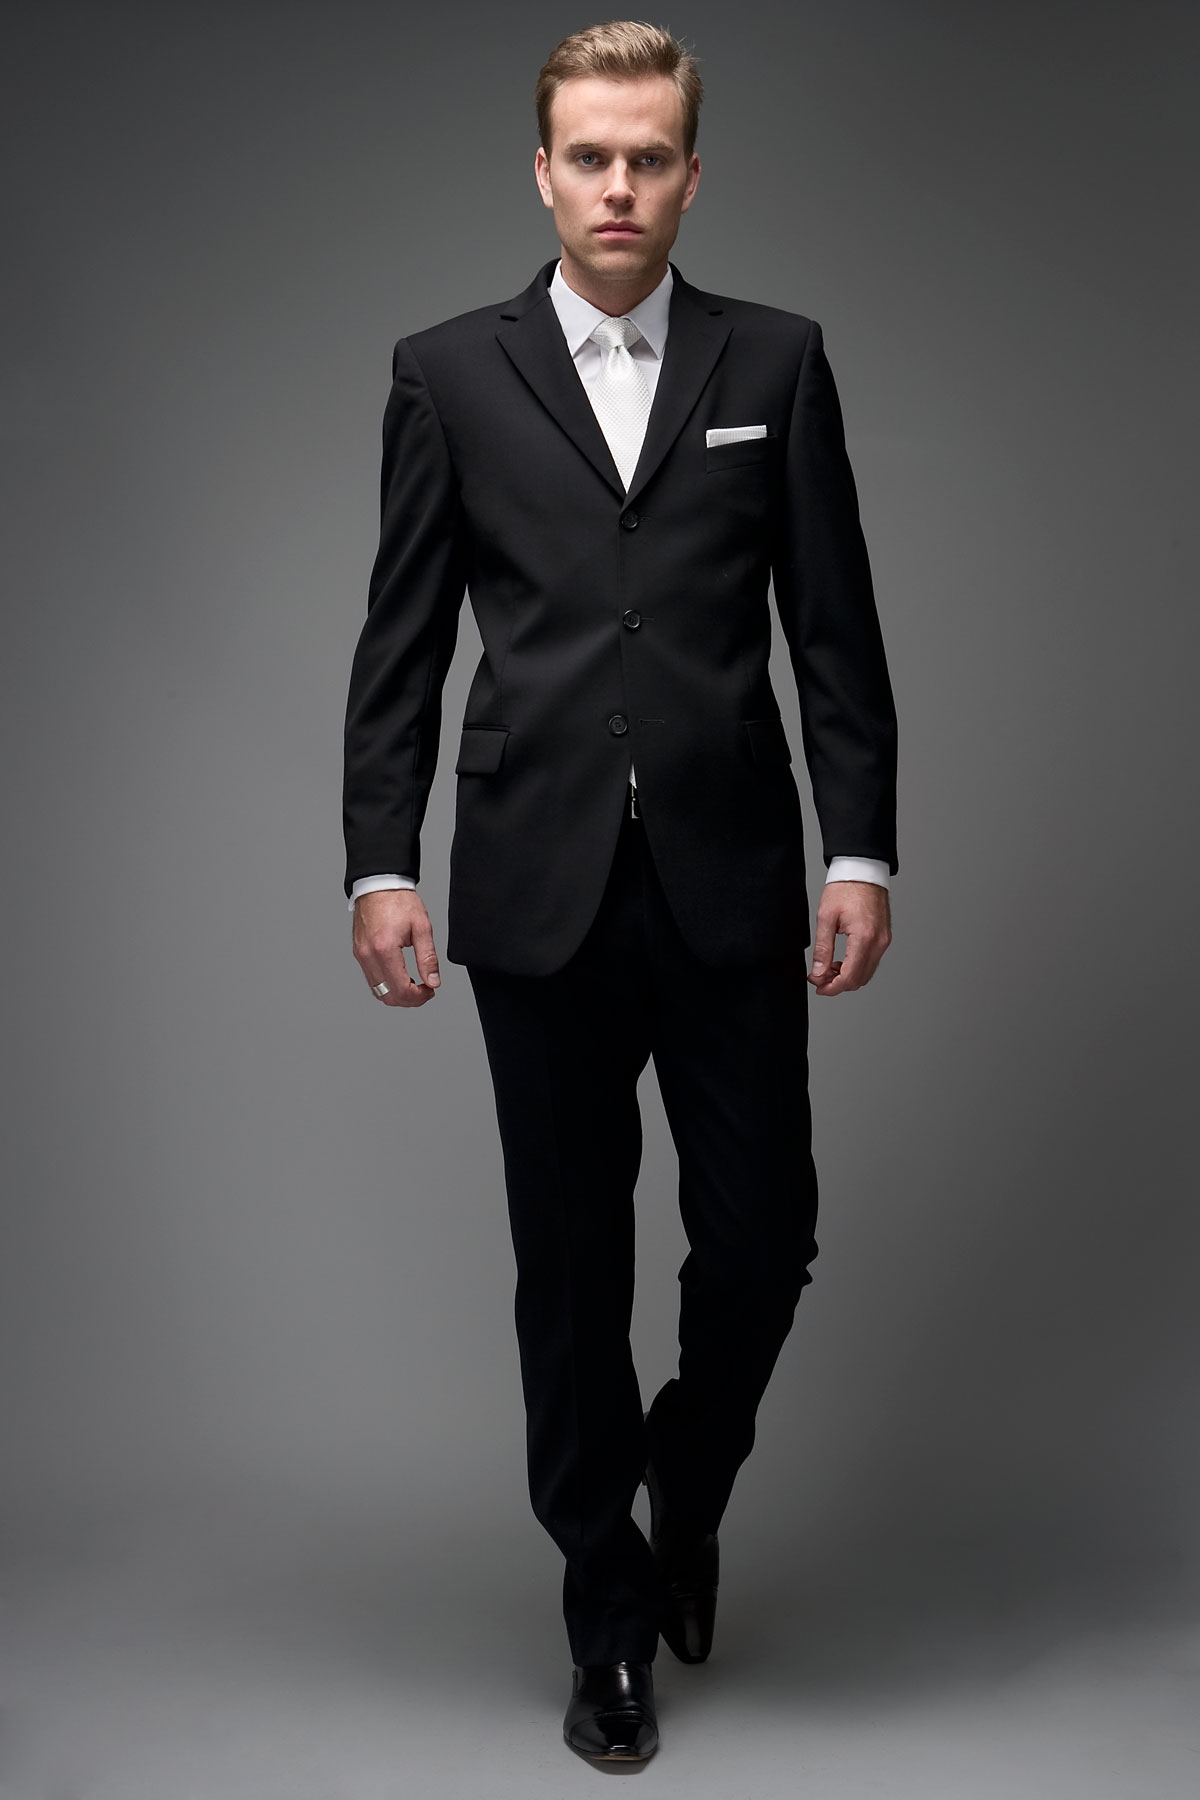 Black Men Suits - Mens Suits Tips - Part 2